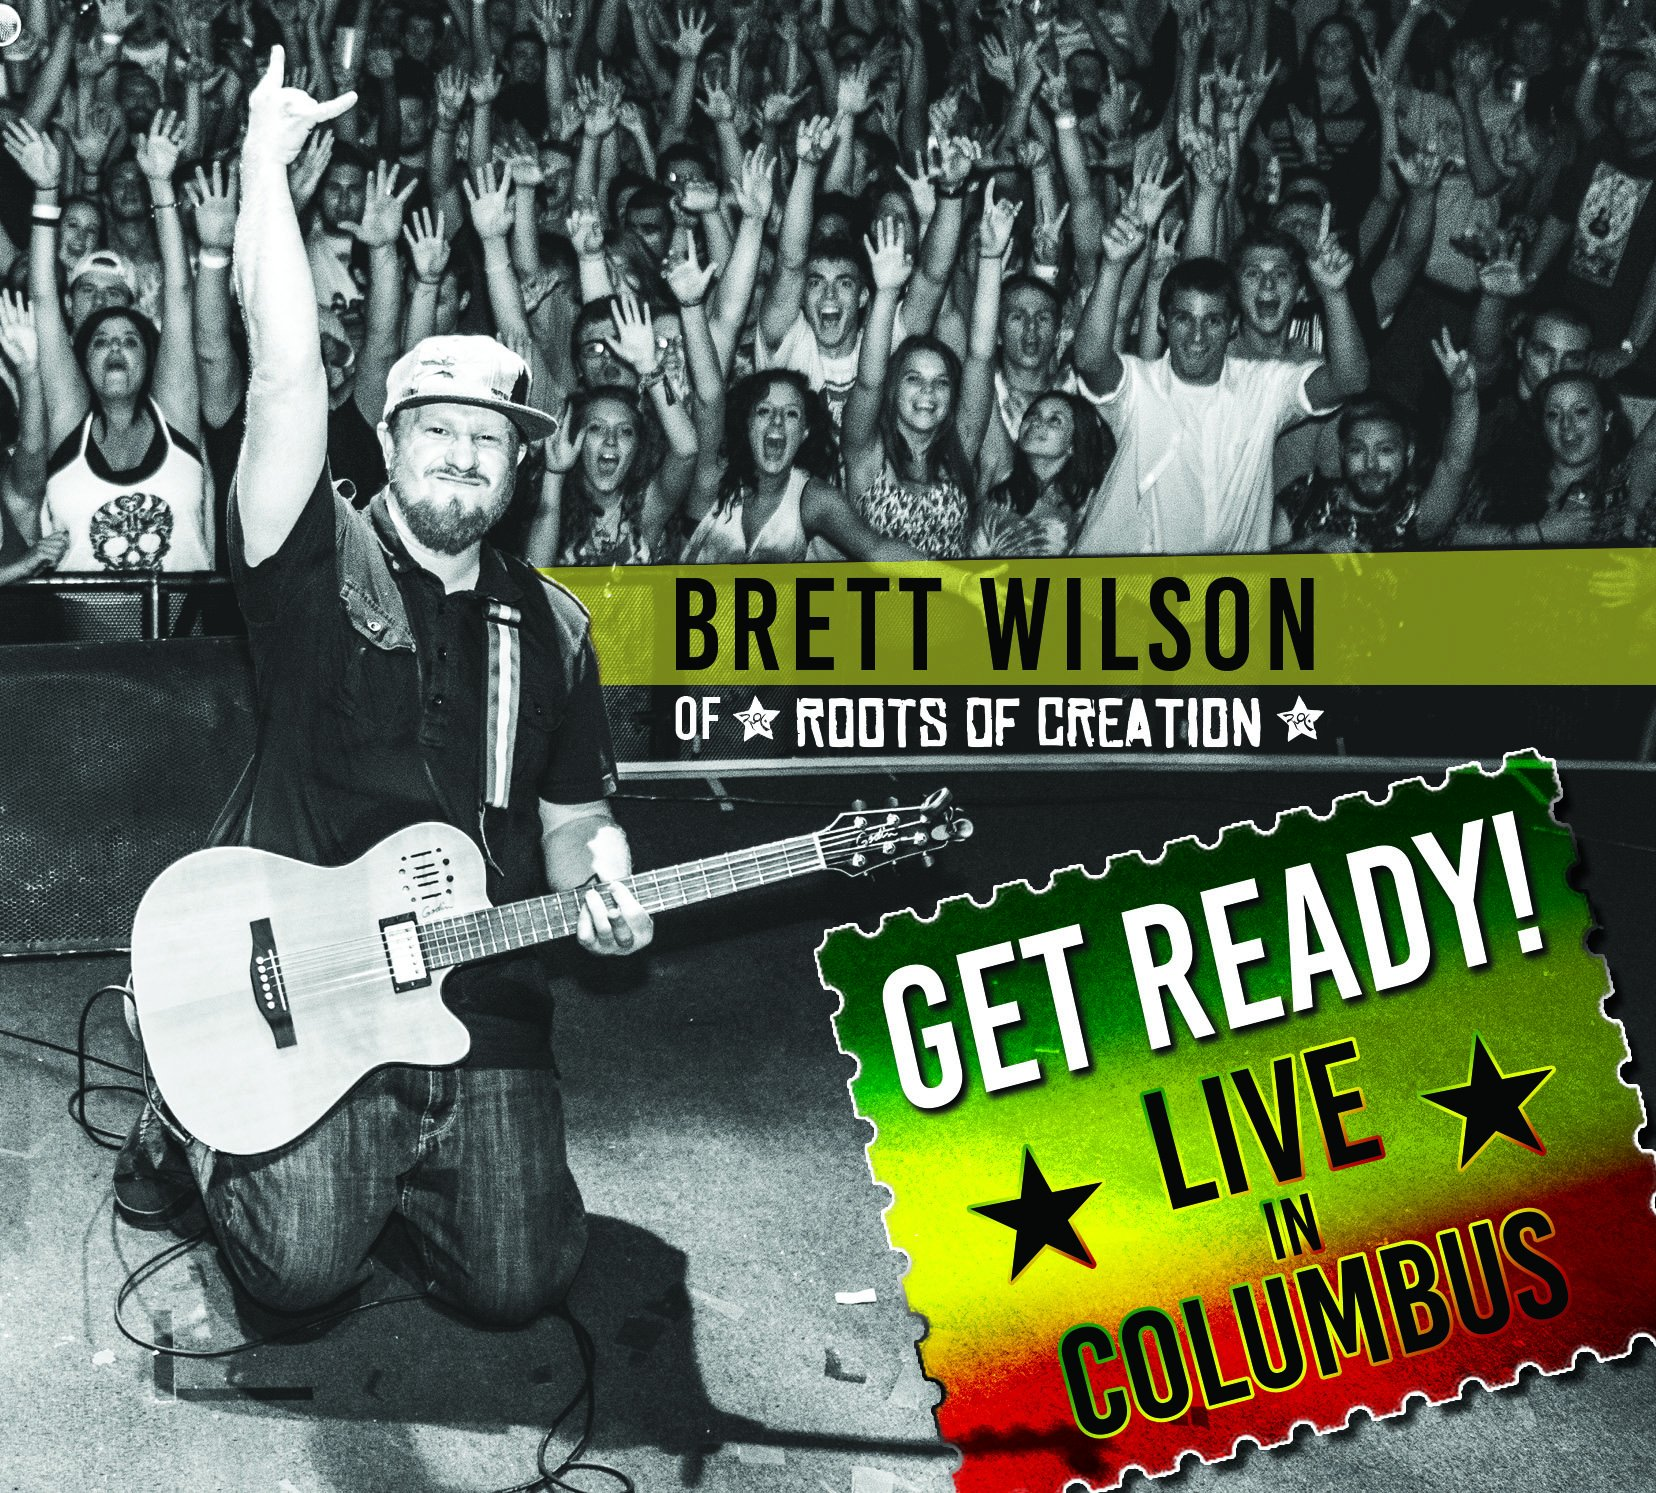 CD : Brett Wilson - Get Ready: Live In Columbus [explicit Content] (Digipack Packaging)